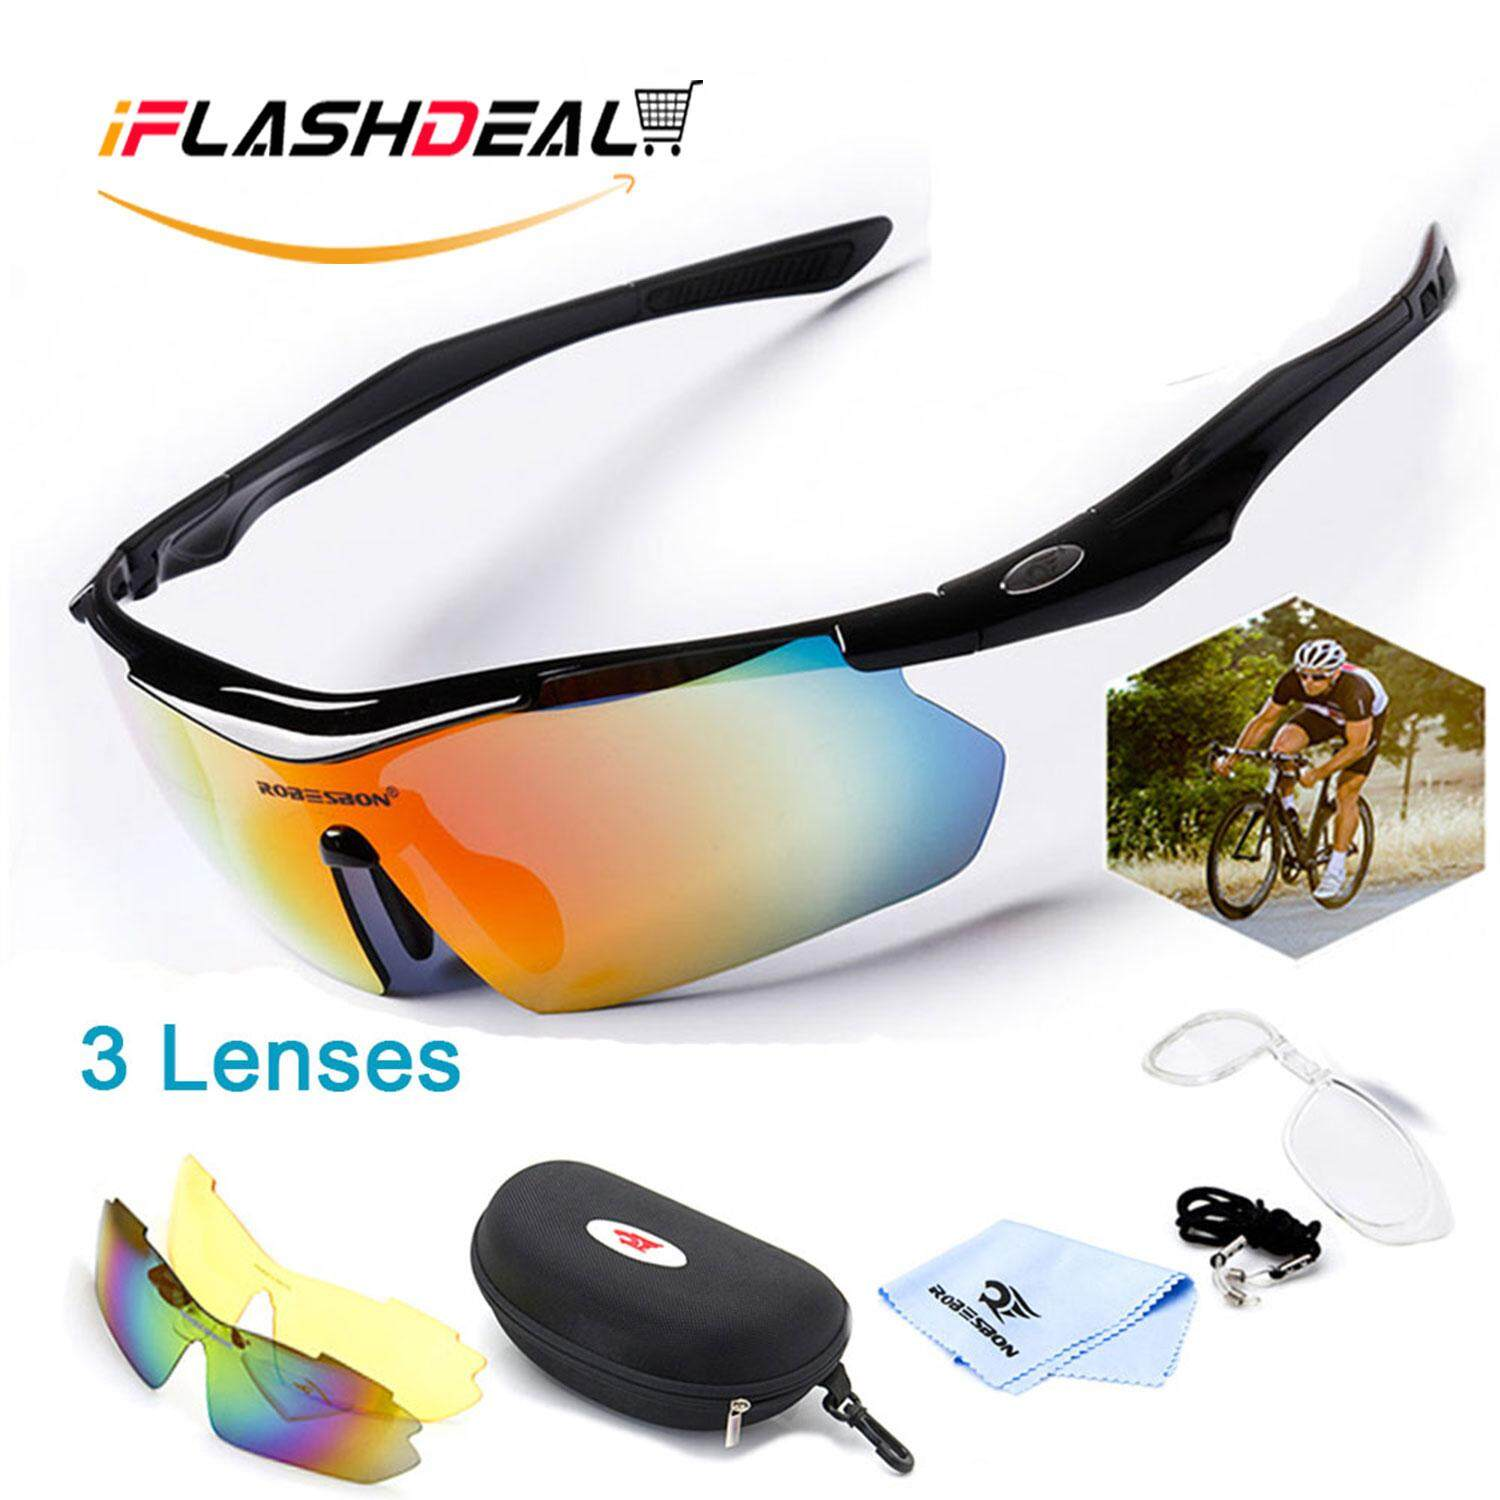 731aab02dc iFlashDeal Global Express Delivery within 72 days Men Sports Sunglasses  Polarized Outdoor Sport Driving